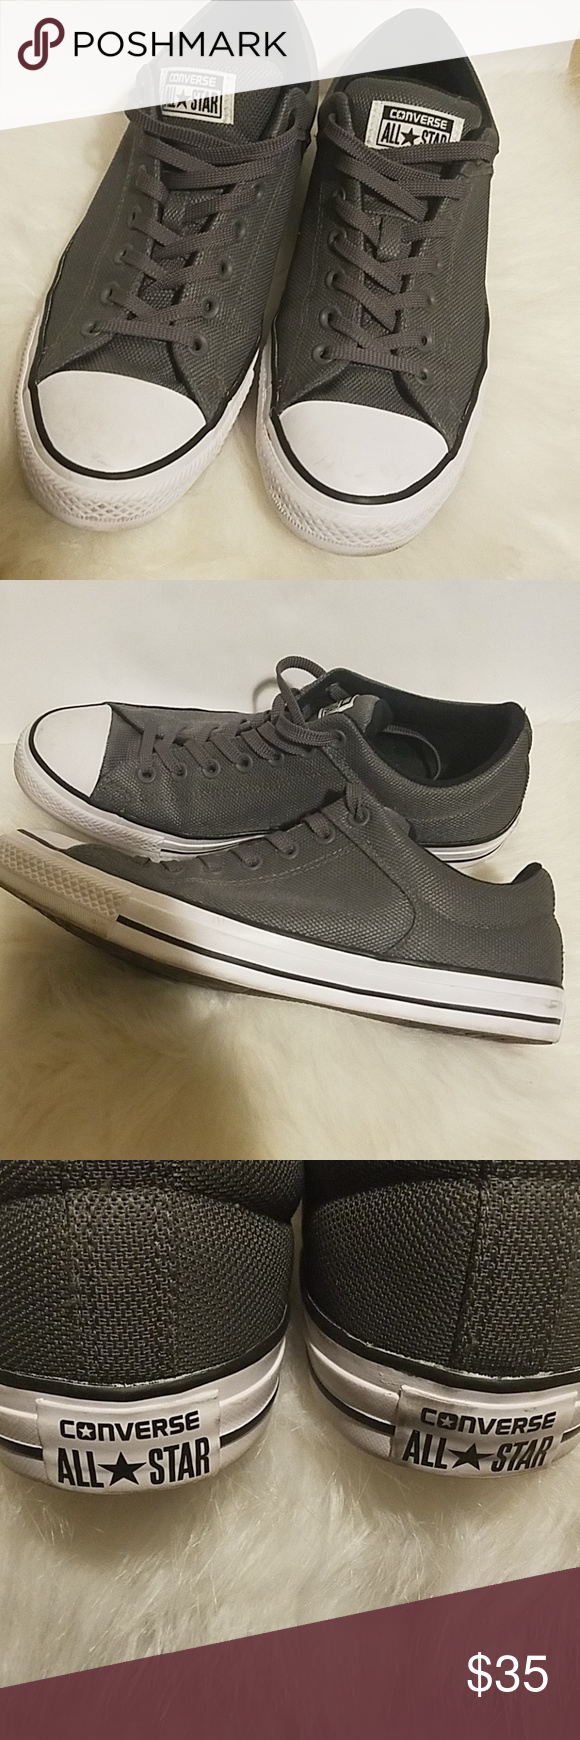 CONVERSE ALL STARS Pre-owned but only worn a couple times gray Converse All  Stars they are gray with gray laces trimmed in white and black great  condition ... 5ffeaa81b